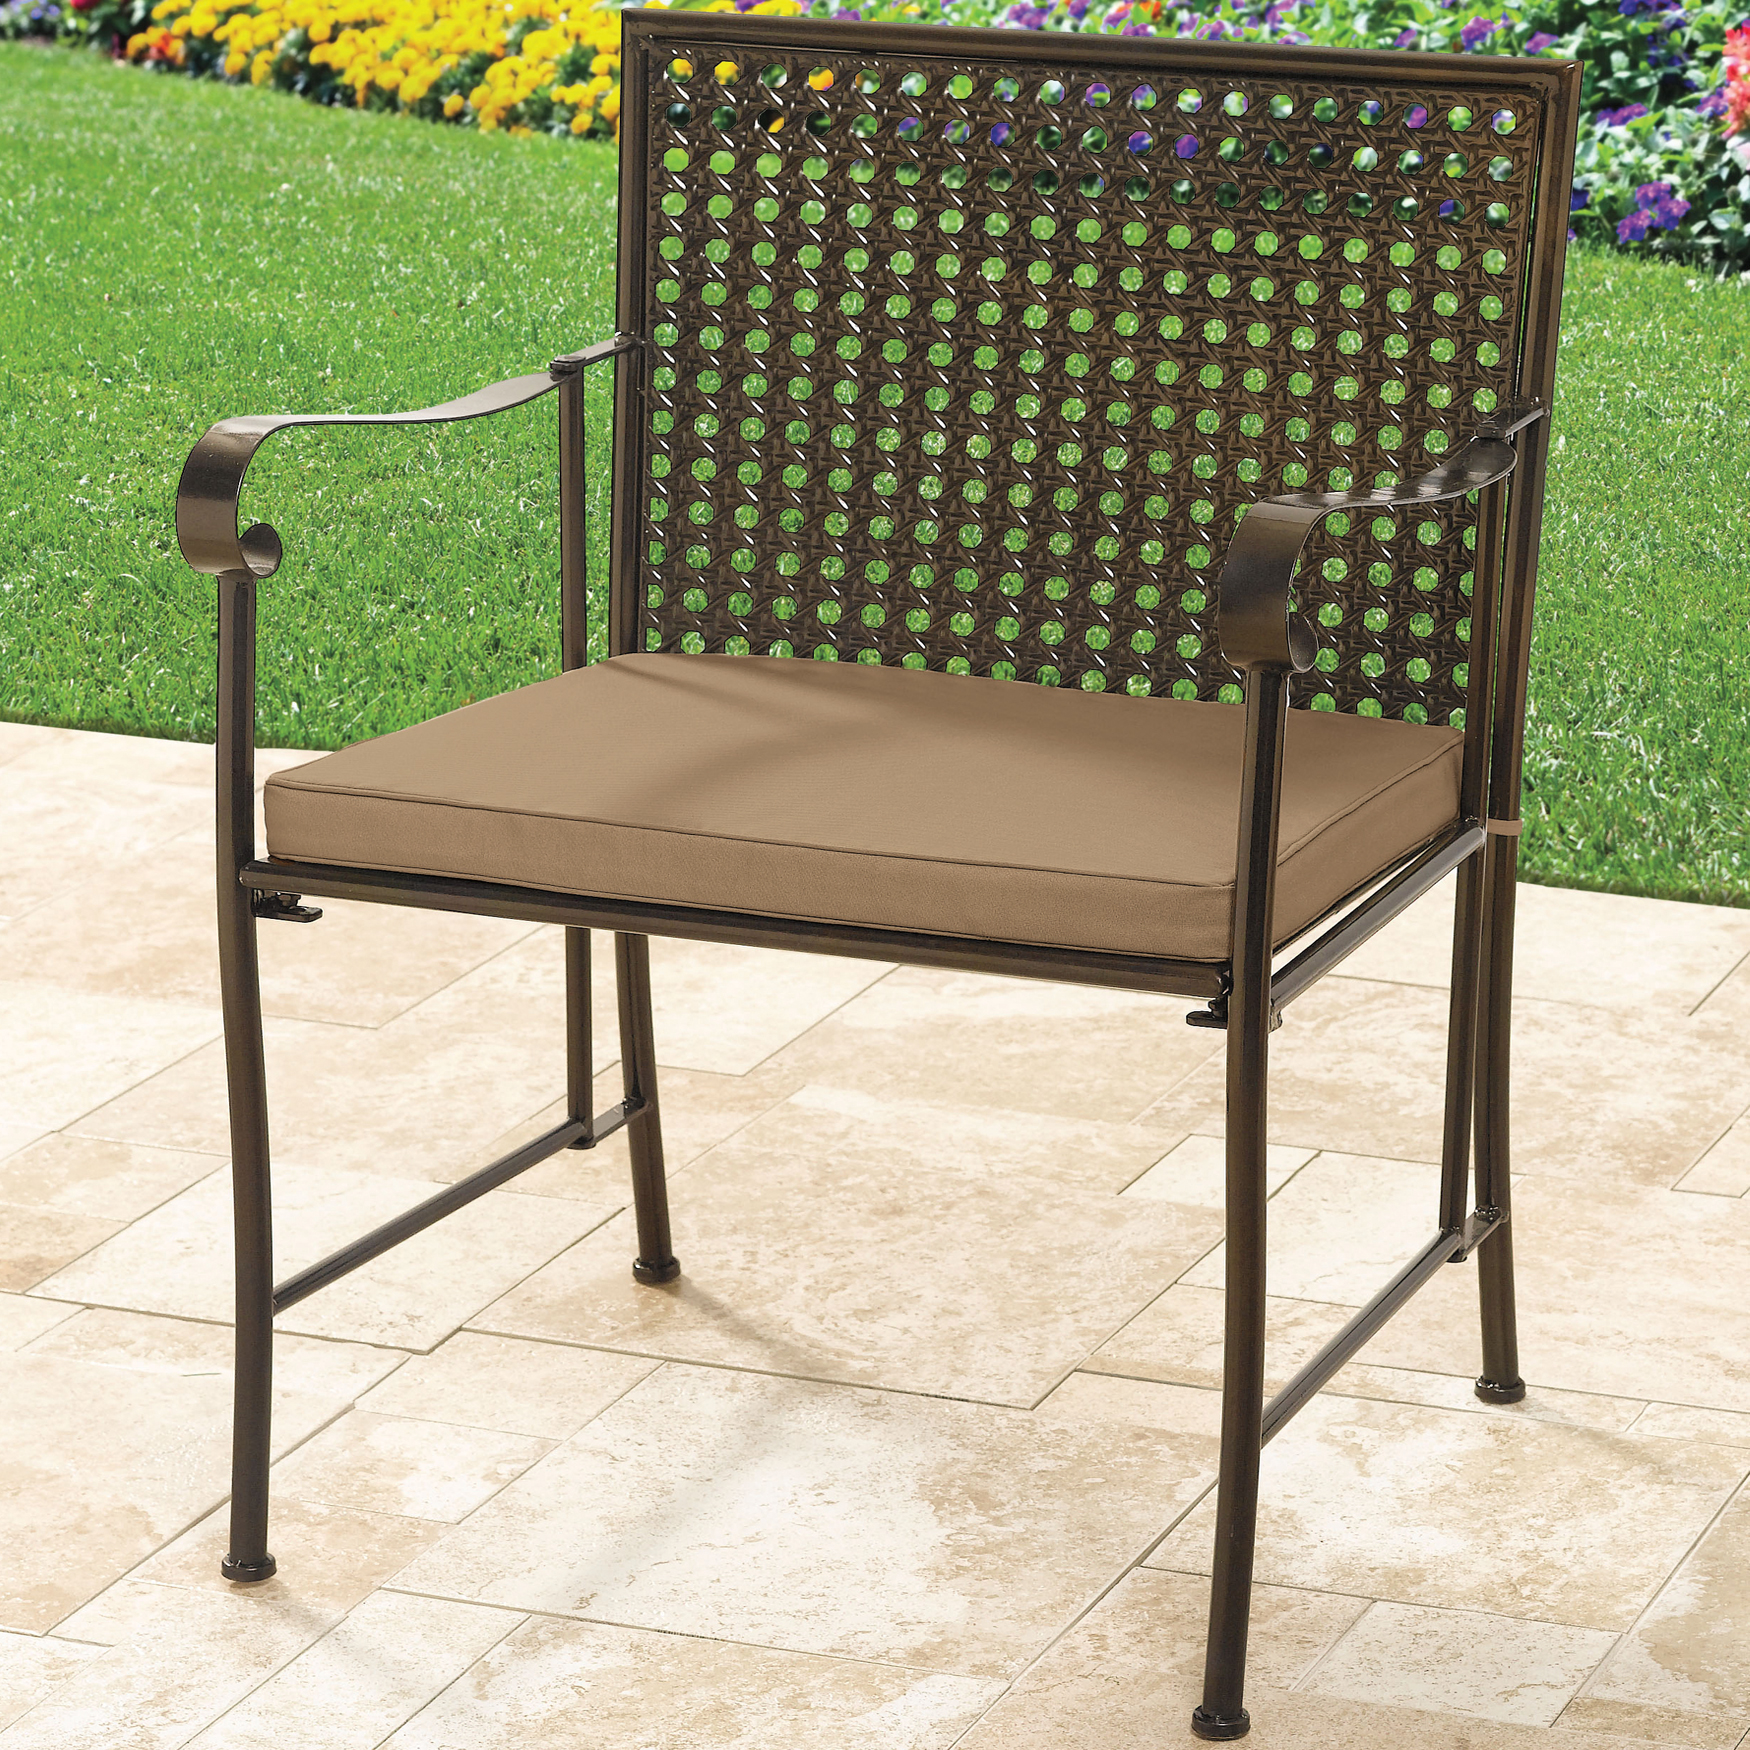 Extra wide metal folding chair